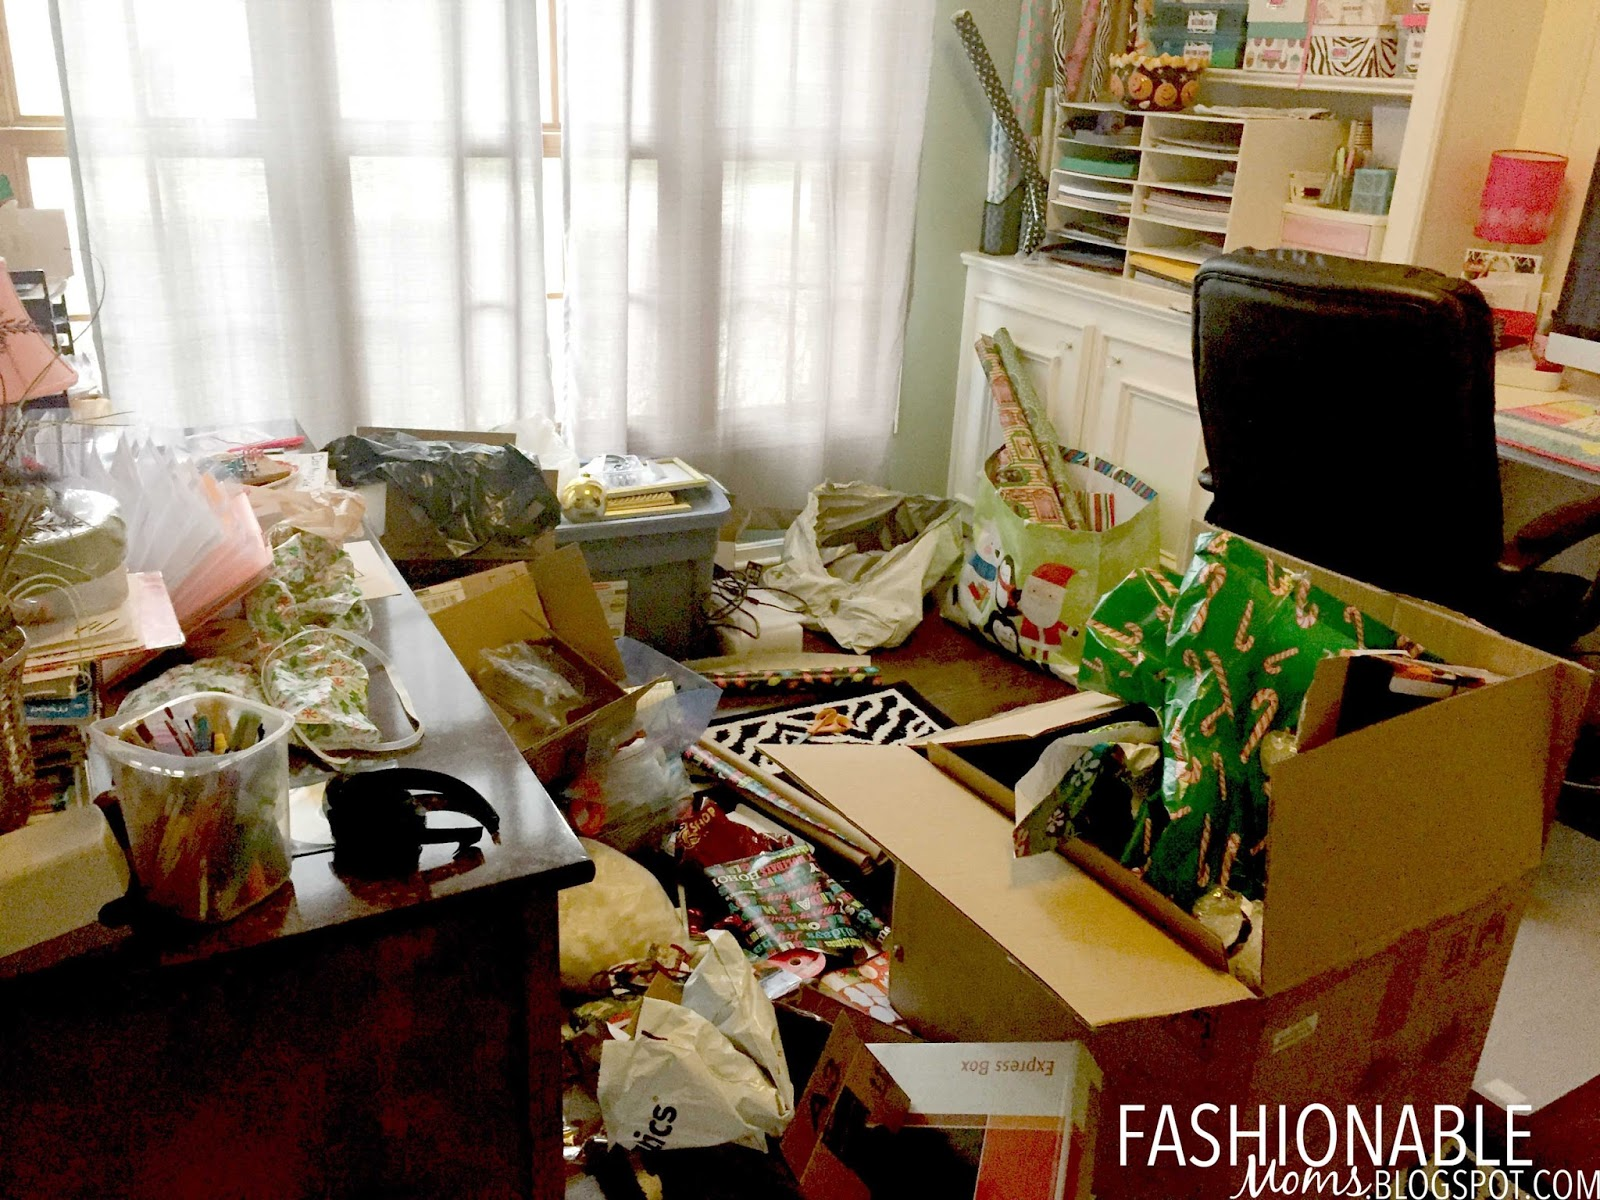 My Fashionable Designs Inside My Home Disastrous Messy Room